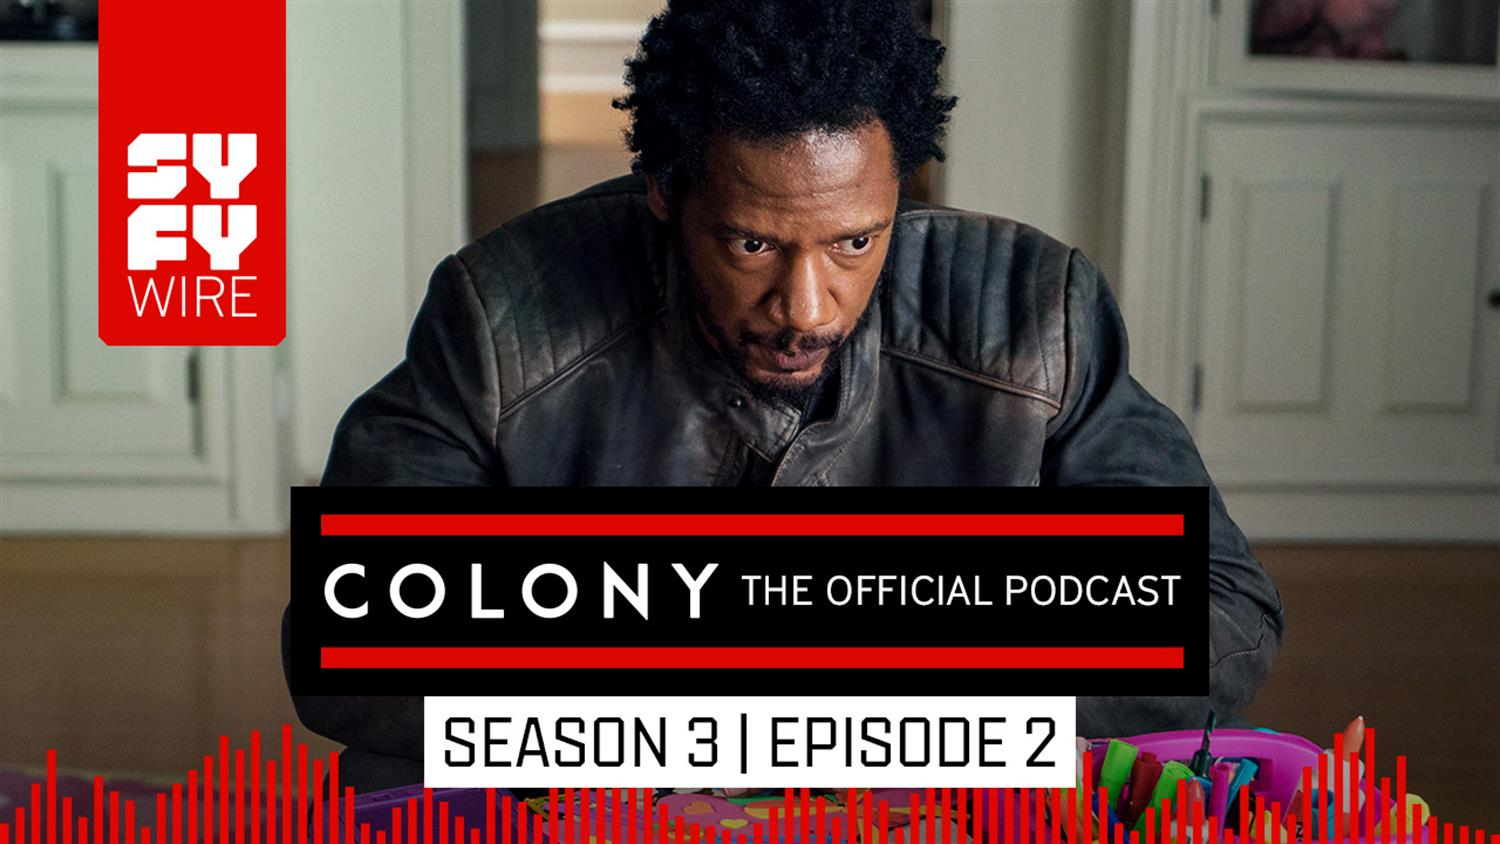 Colony The Official Podcast: Season 3, Episode 2